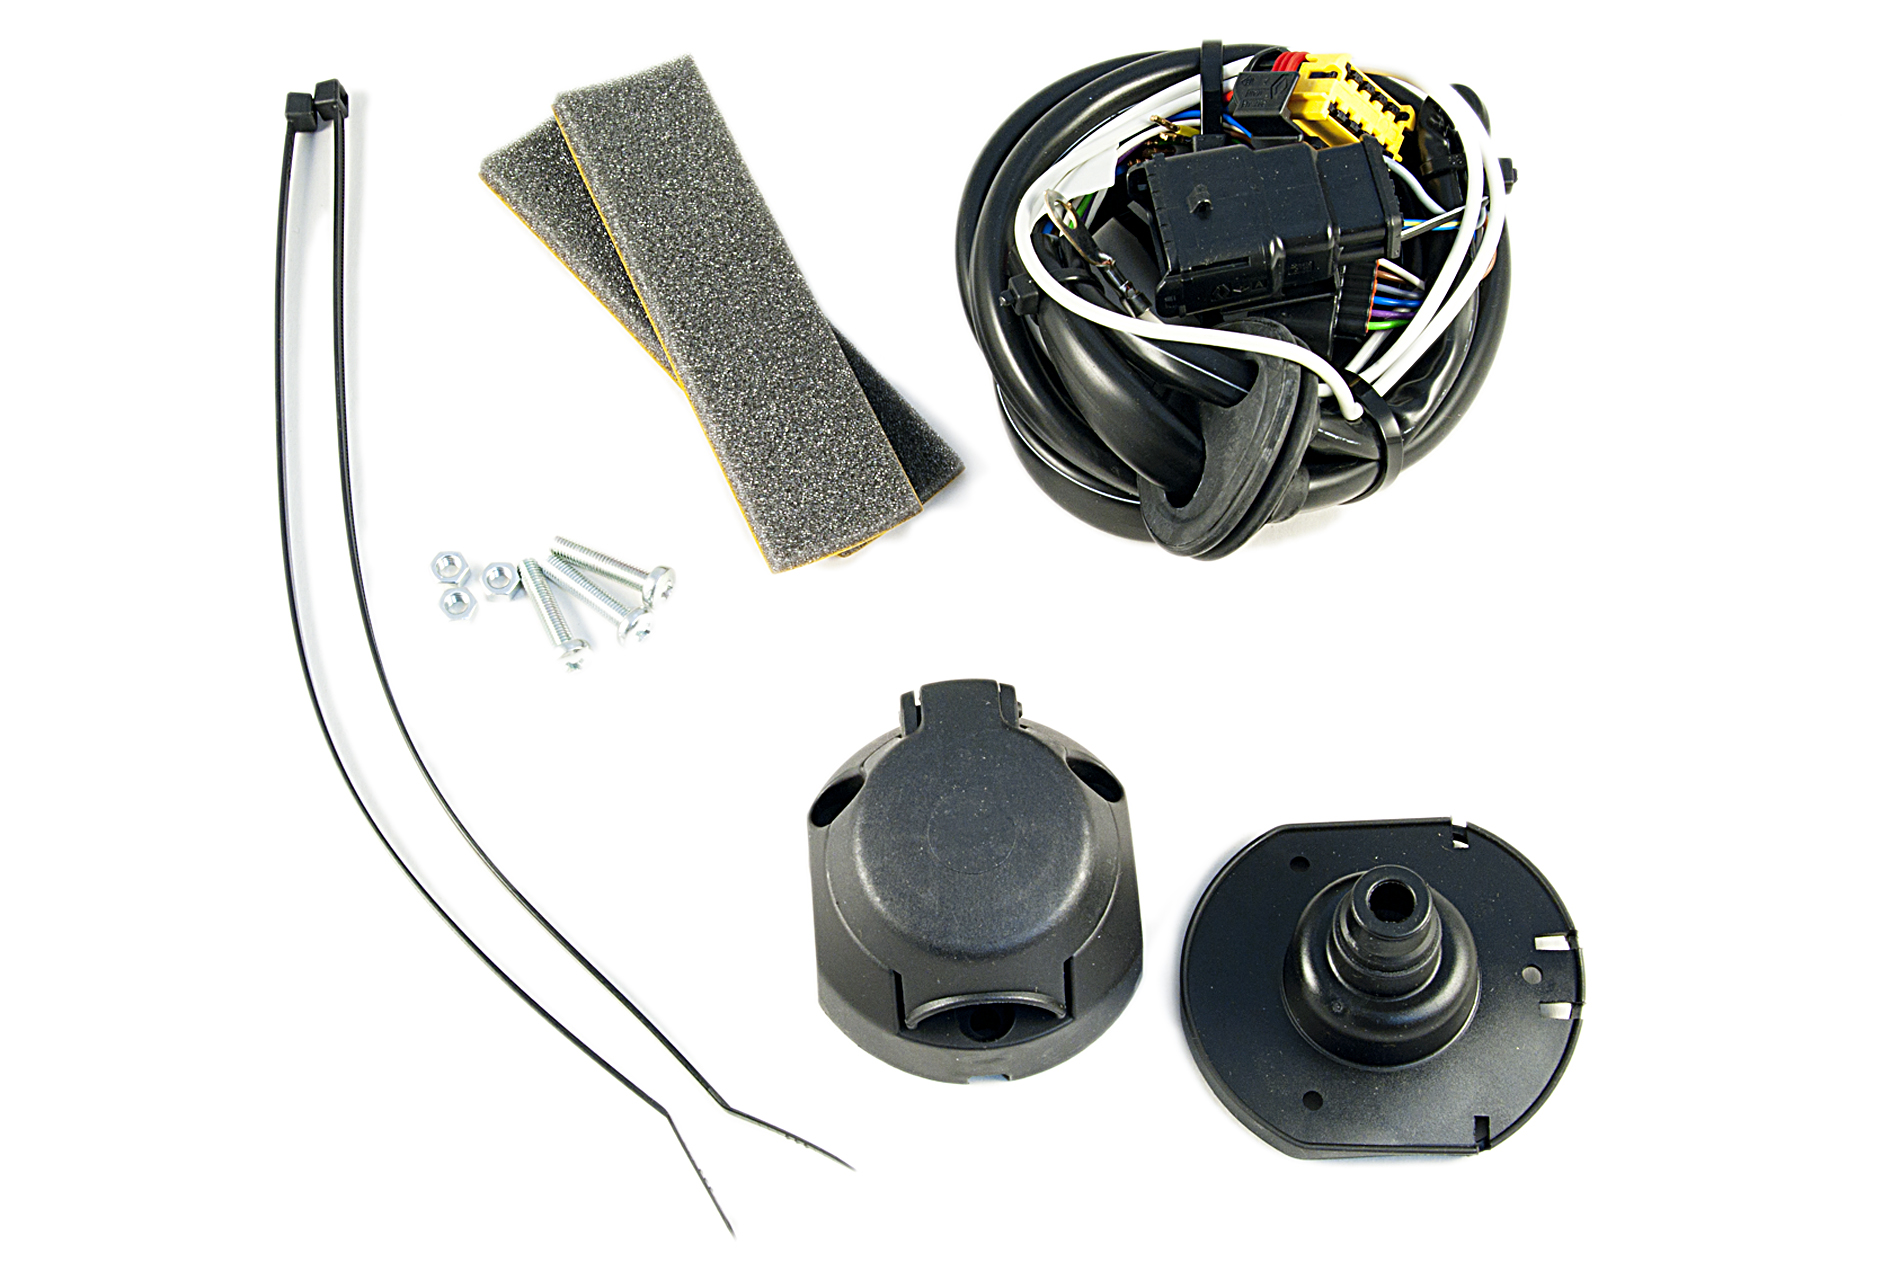 nissan genuine 7-pin electrical kit/wiring for tow bar ... 7 pin tow wiring